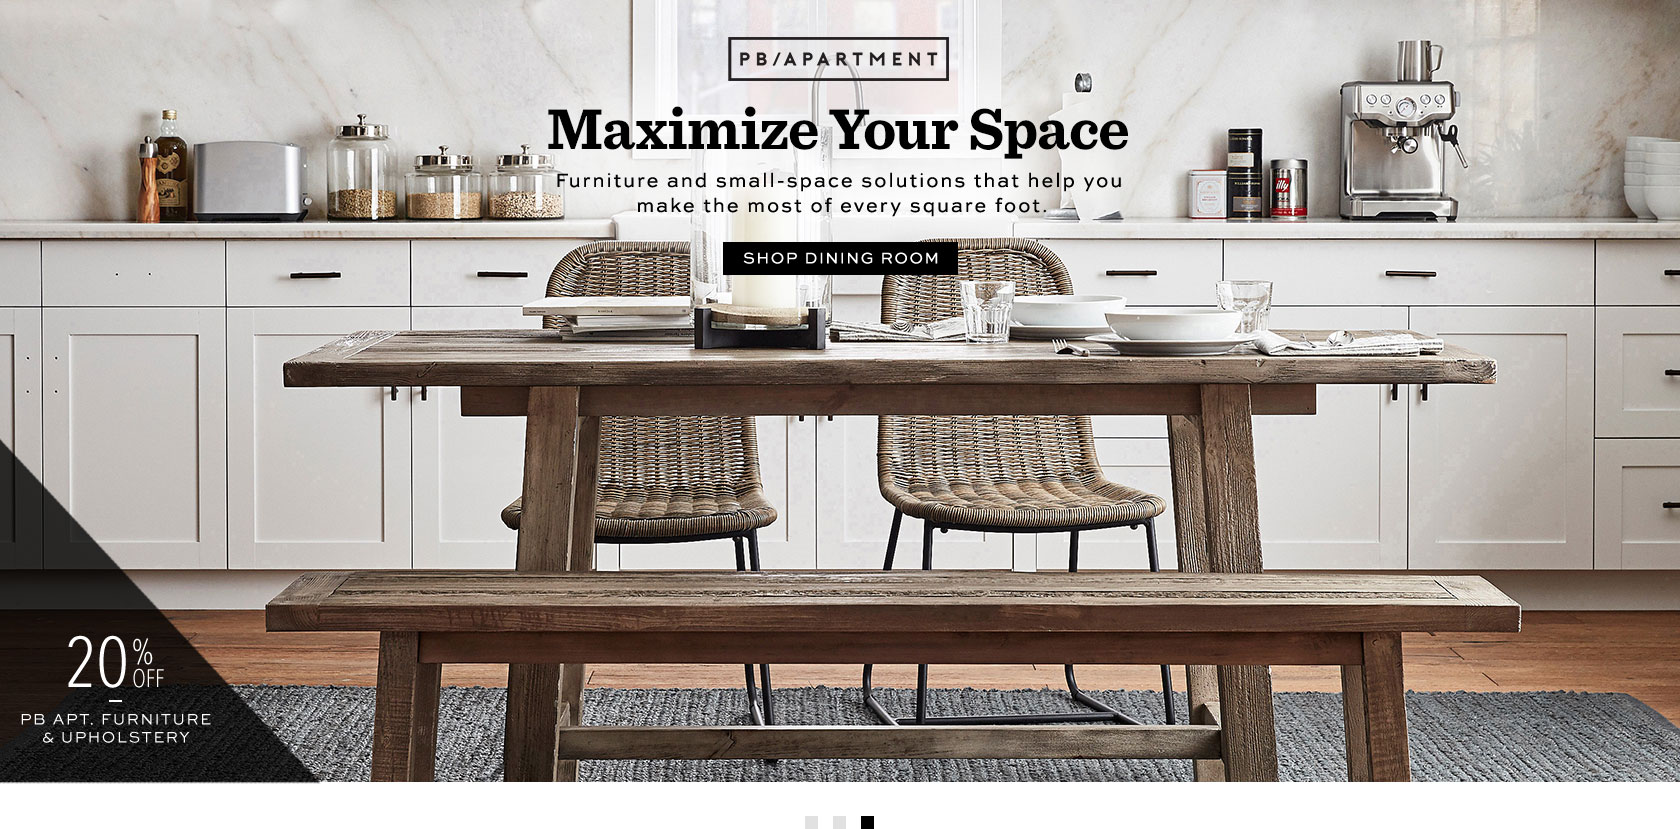 Home Furniture Furniture for Homes & Small Spaces |  Pottery |  PDVALTY pottery barn